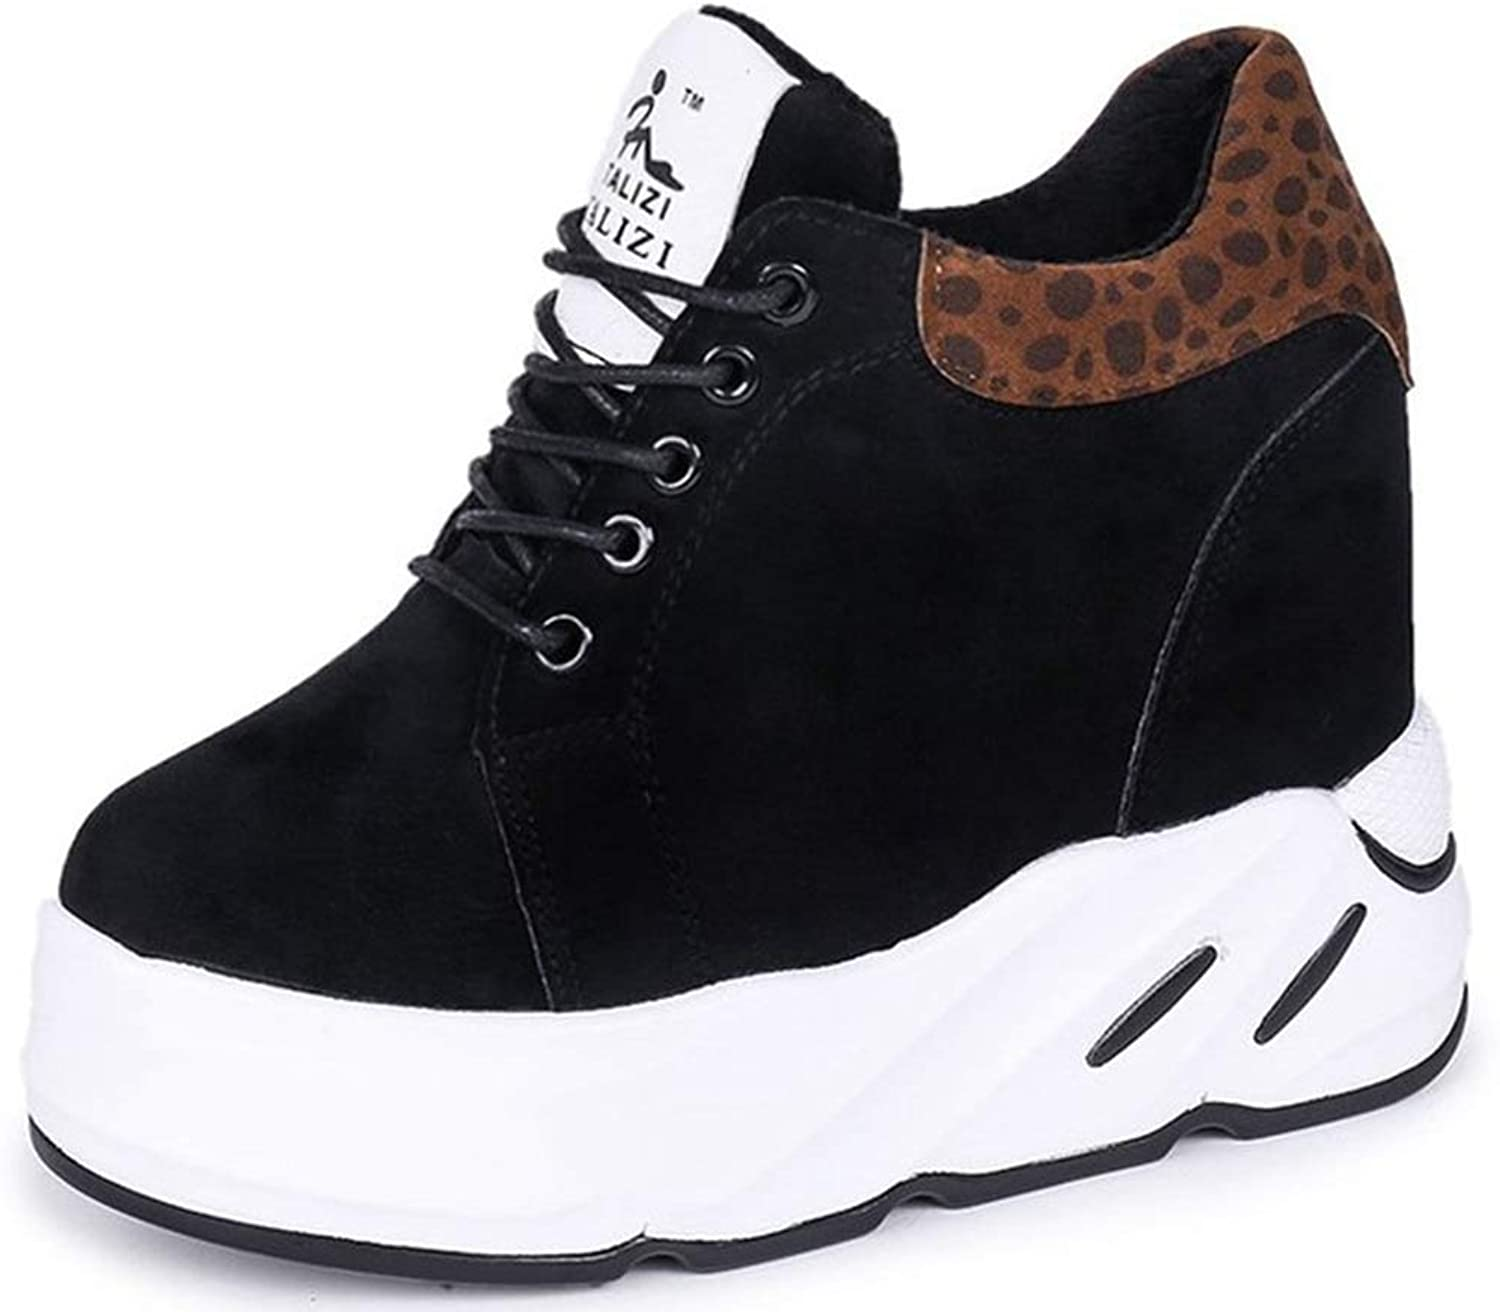 T-JULY Fashion Autumn Women Platform Wedges High Heel Winter Ankle Fashion-Sneakers Female Height Increasing shoes